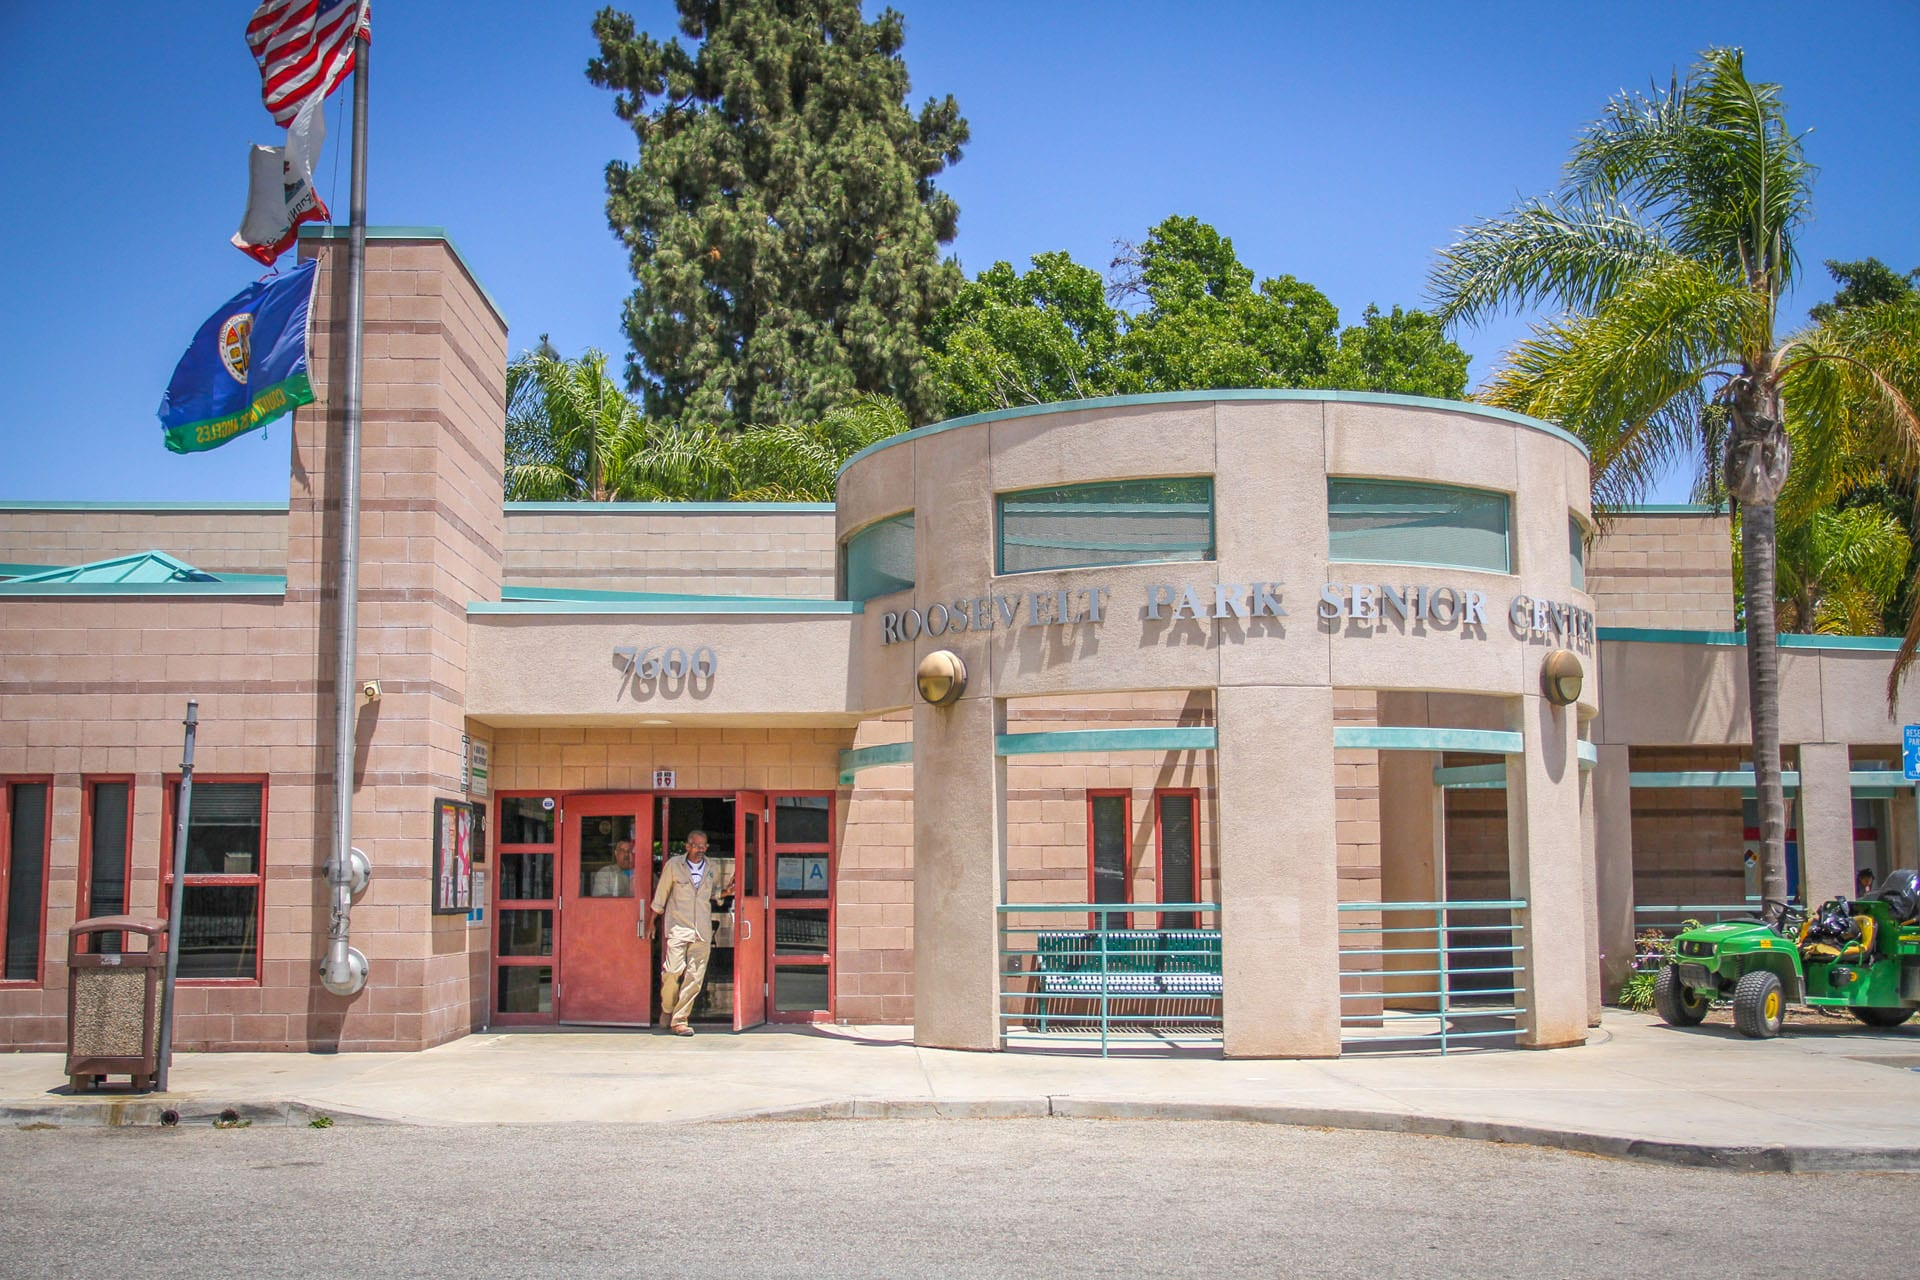 Roosevelt Park Senior Center